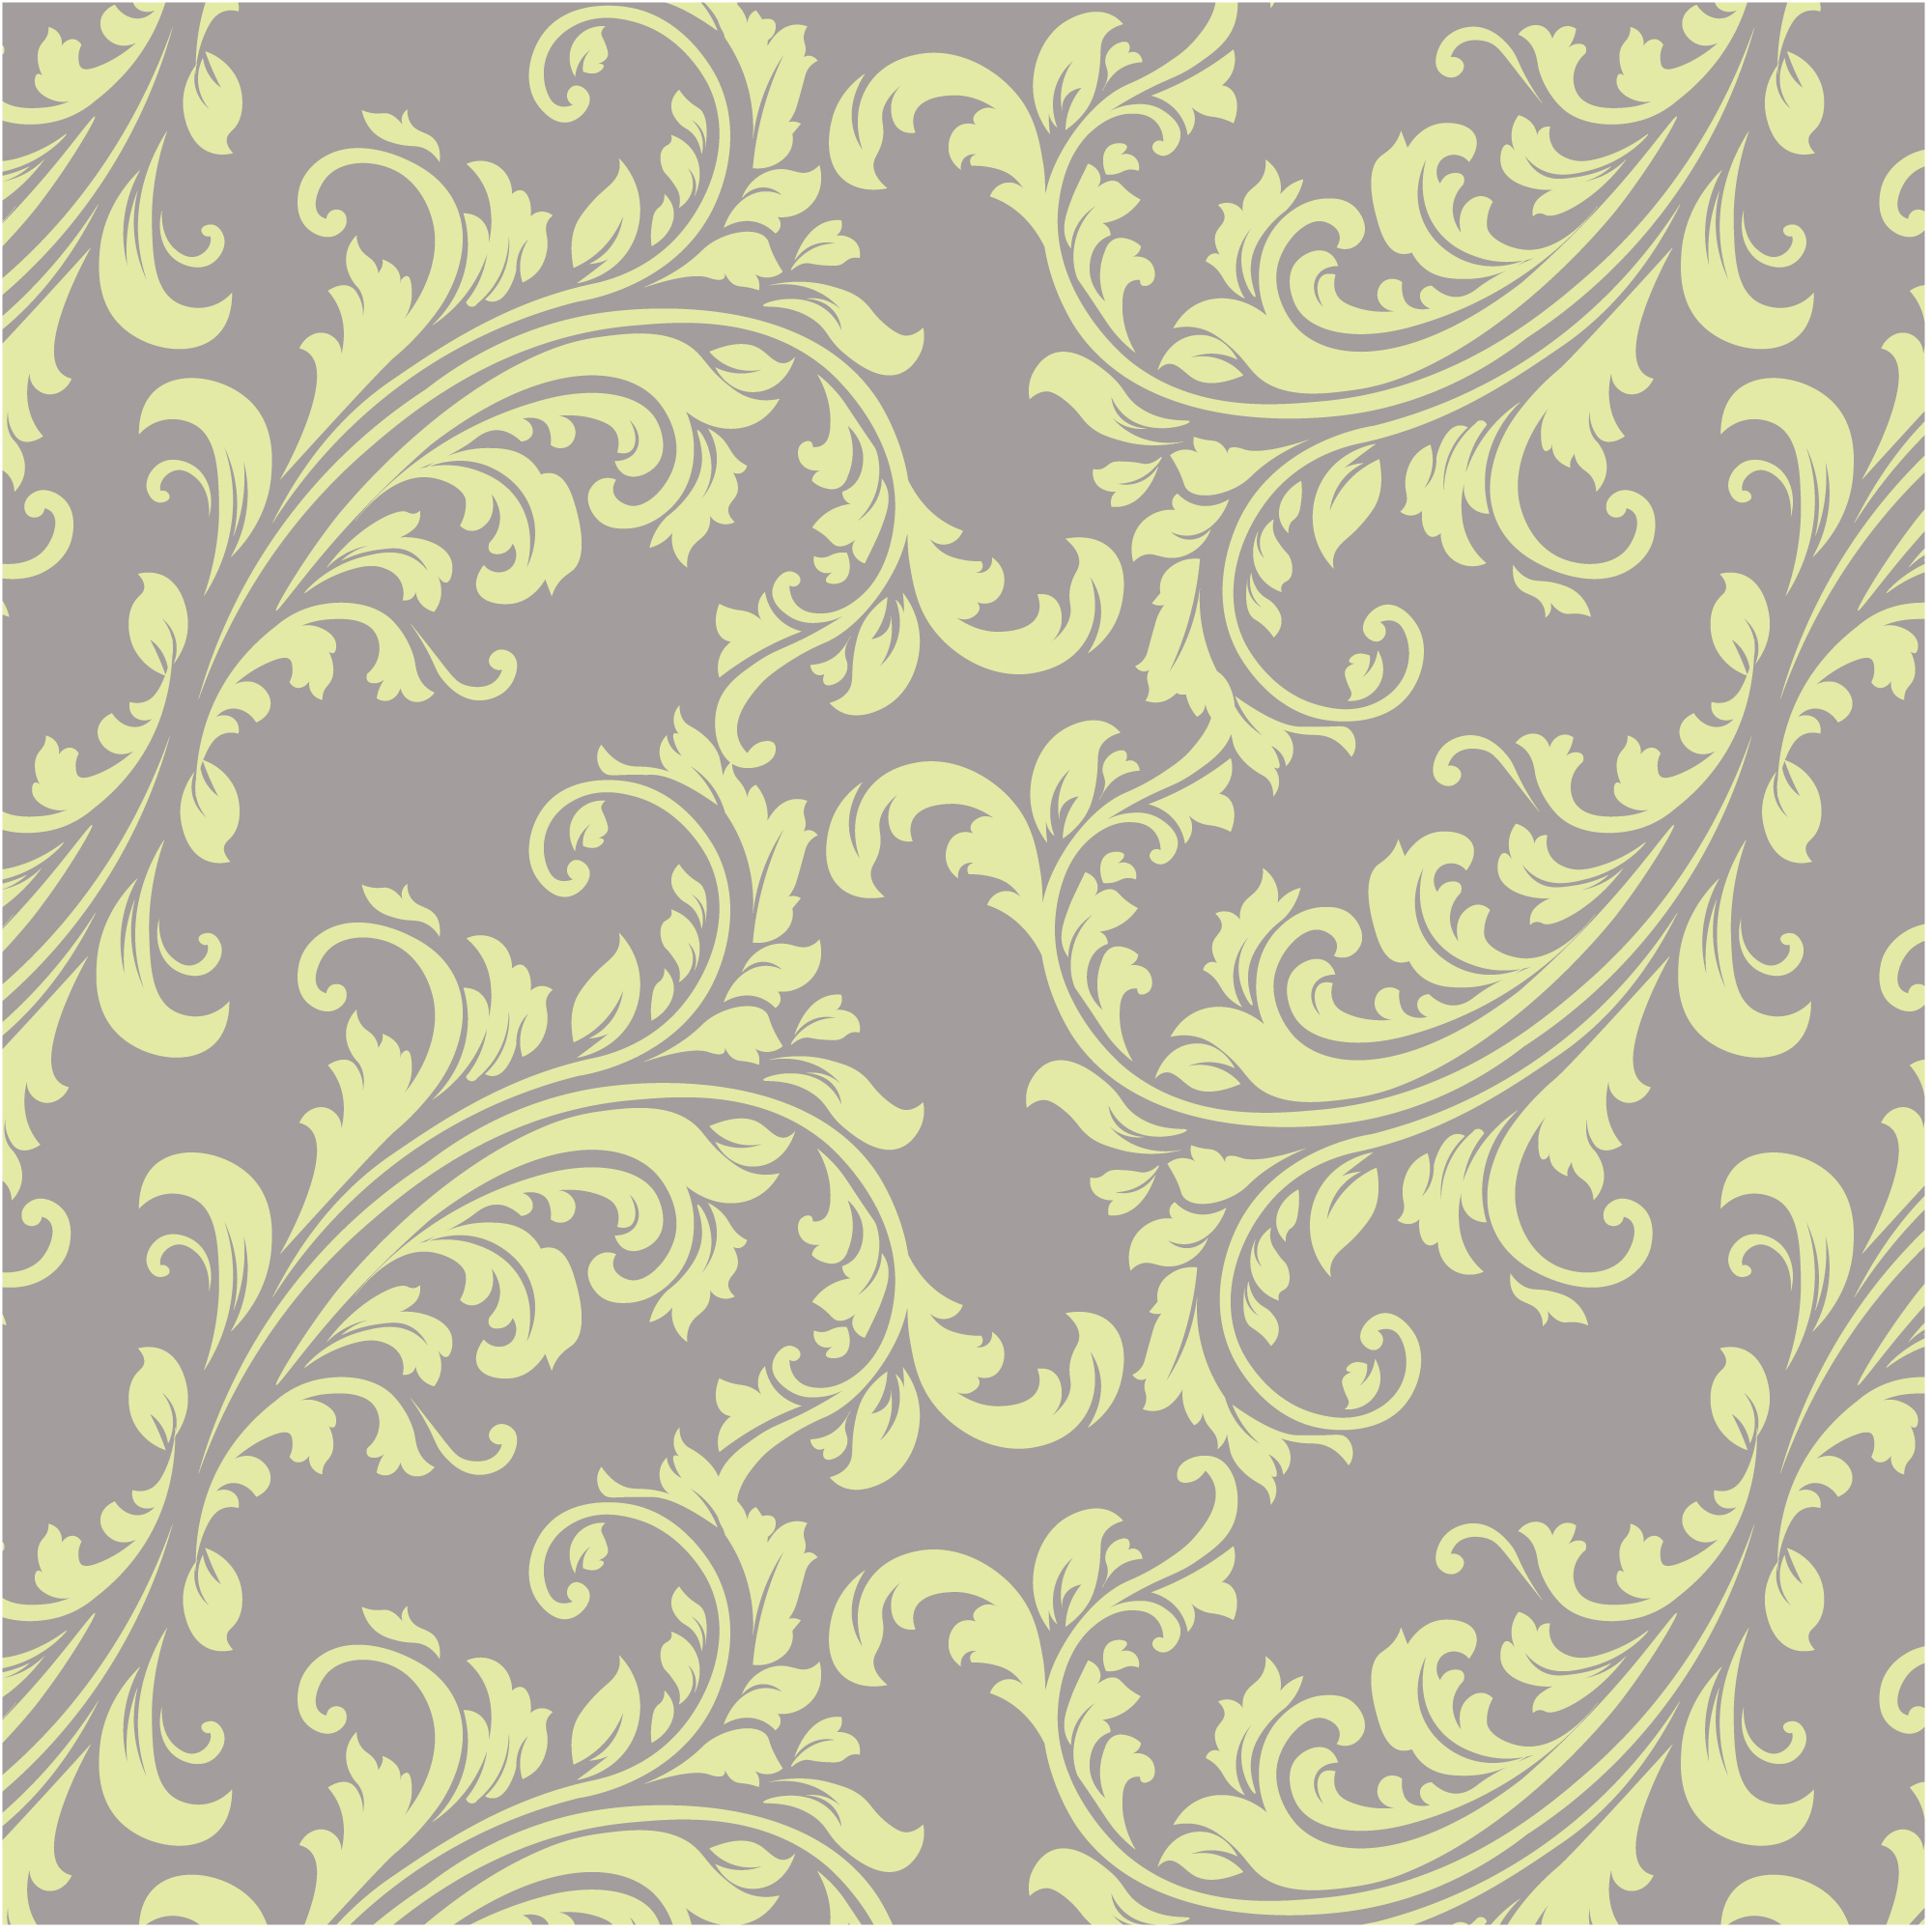 Yellow and brown ornamental pattern background